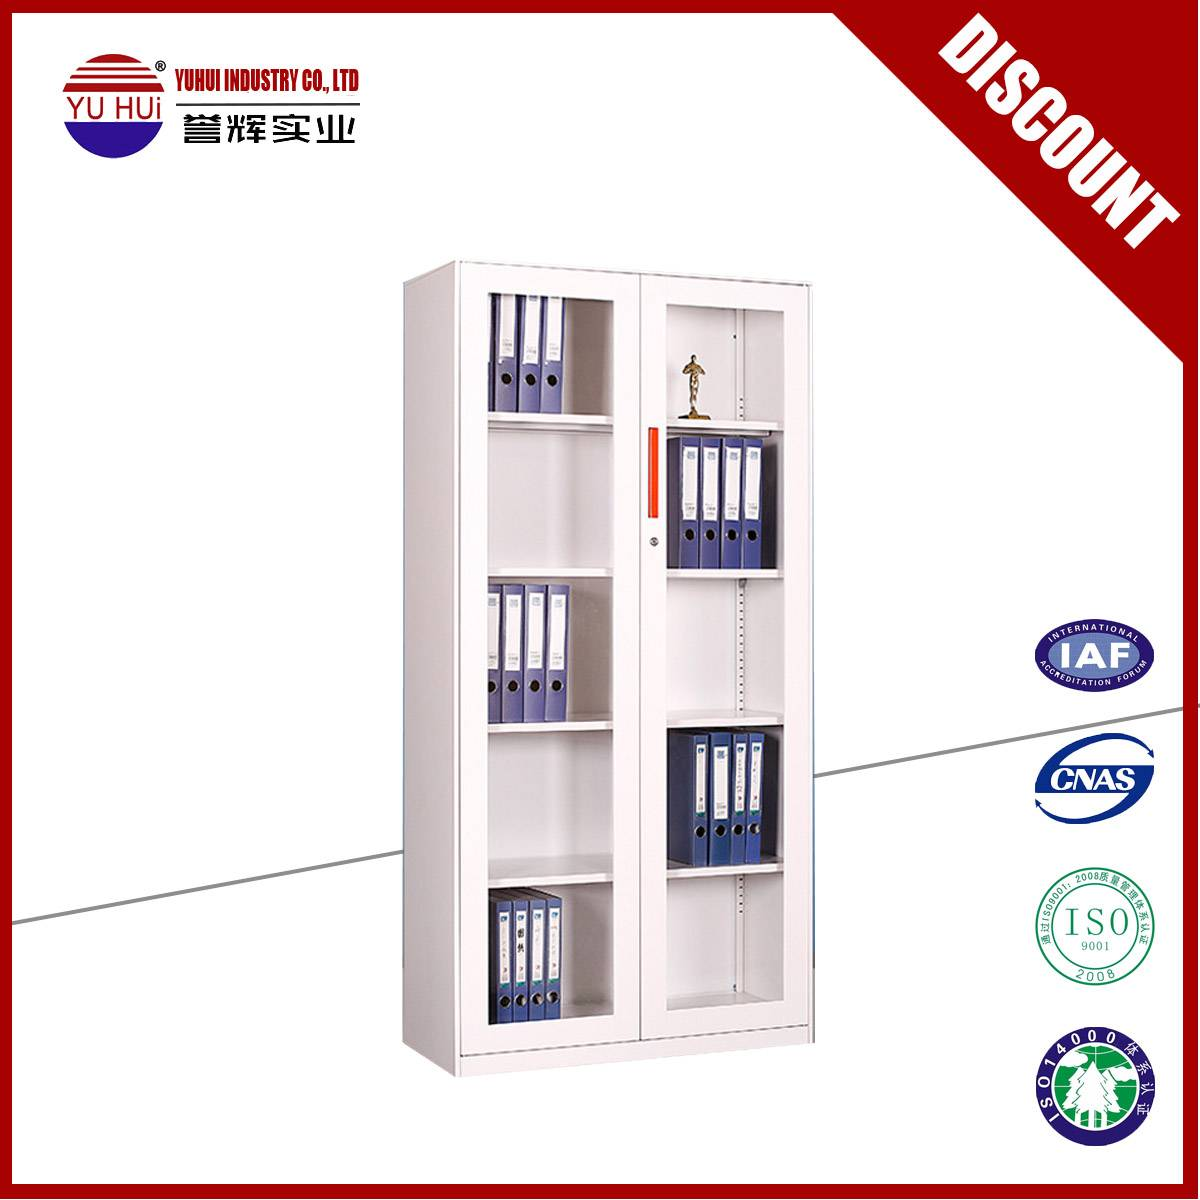 Yuhui hot selling filing storage cabinet with glass door